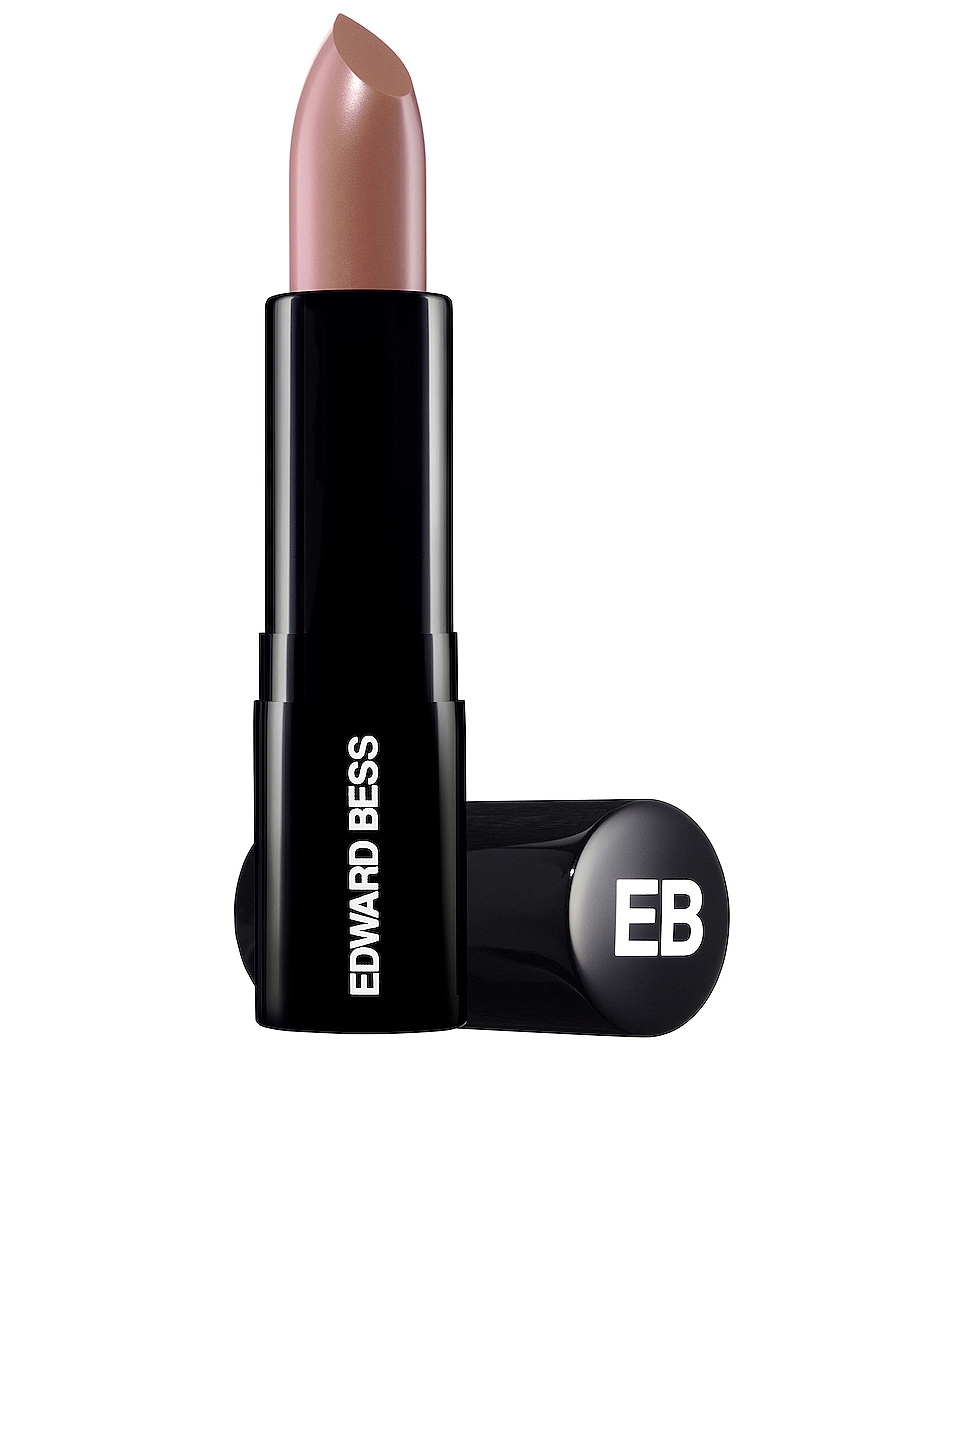 Edward Bess Ultra Slick Lipstick in Pure Impulse